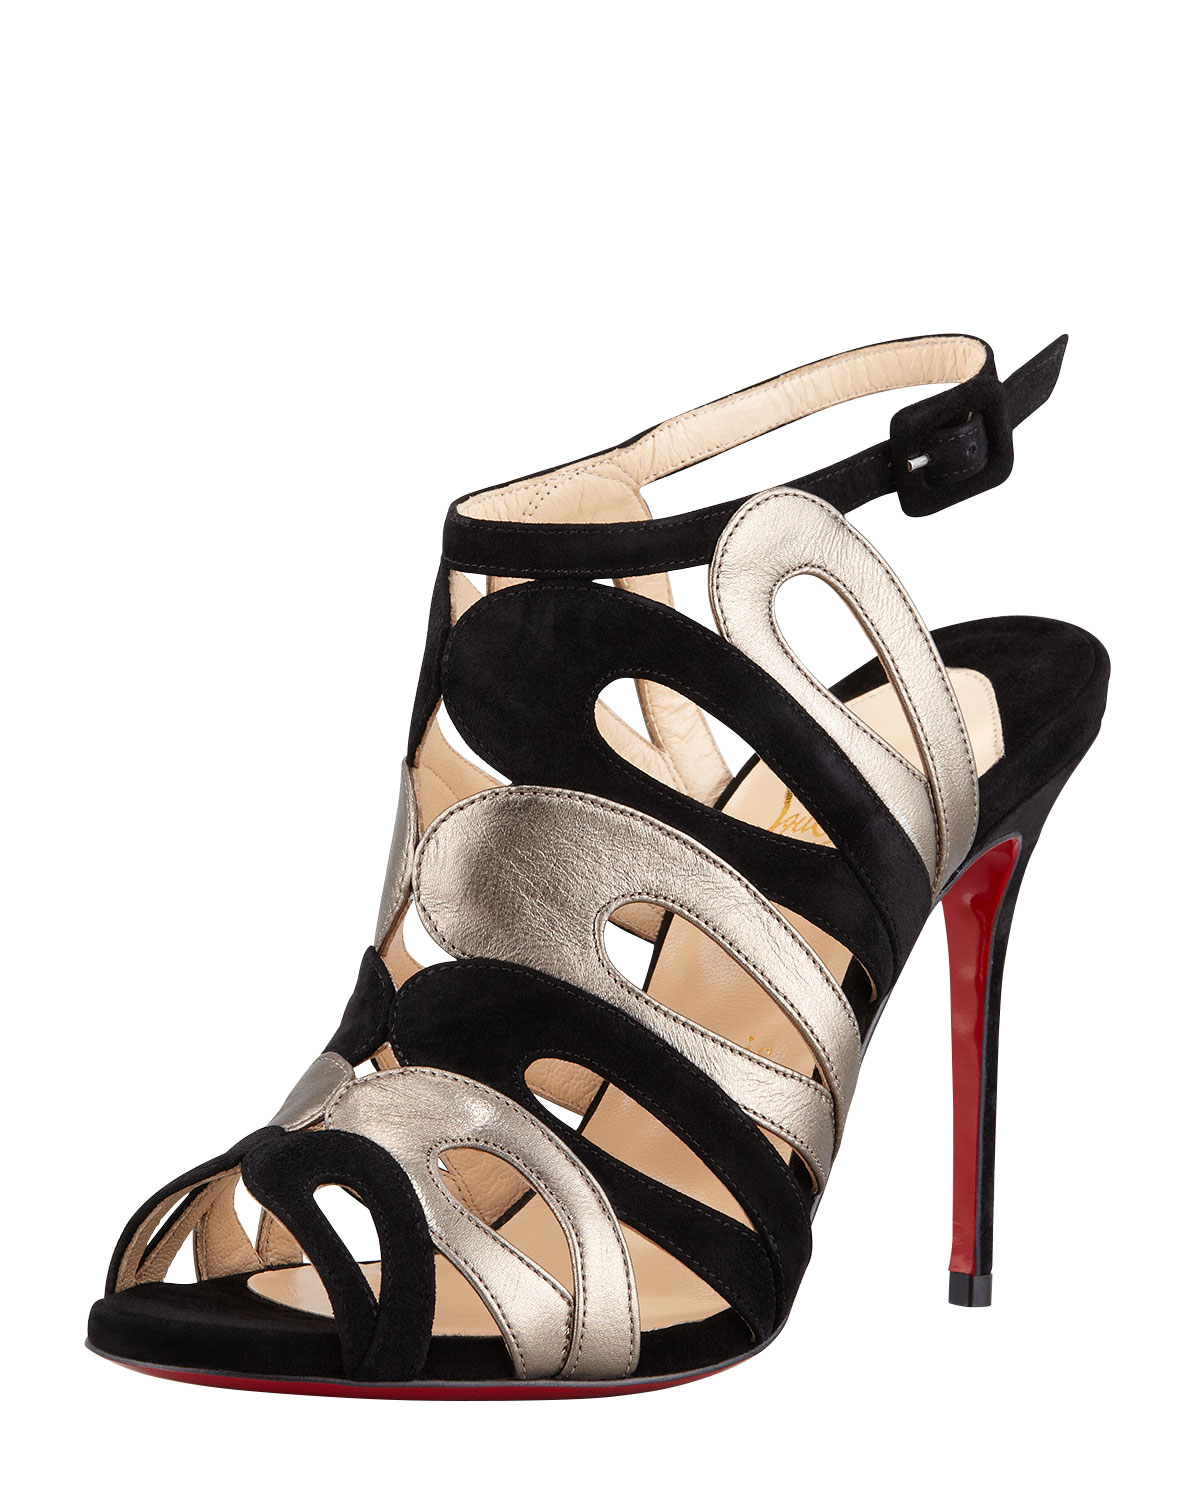 Christian louboutin Cerso Suede metallic Strappy Red Sole Sandal ...